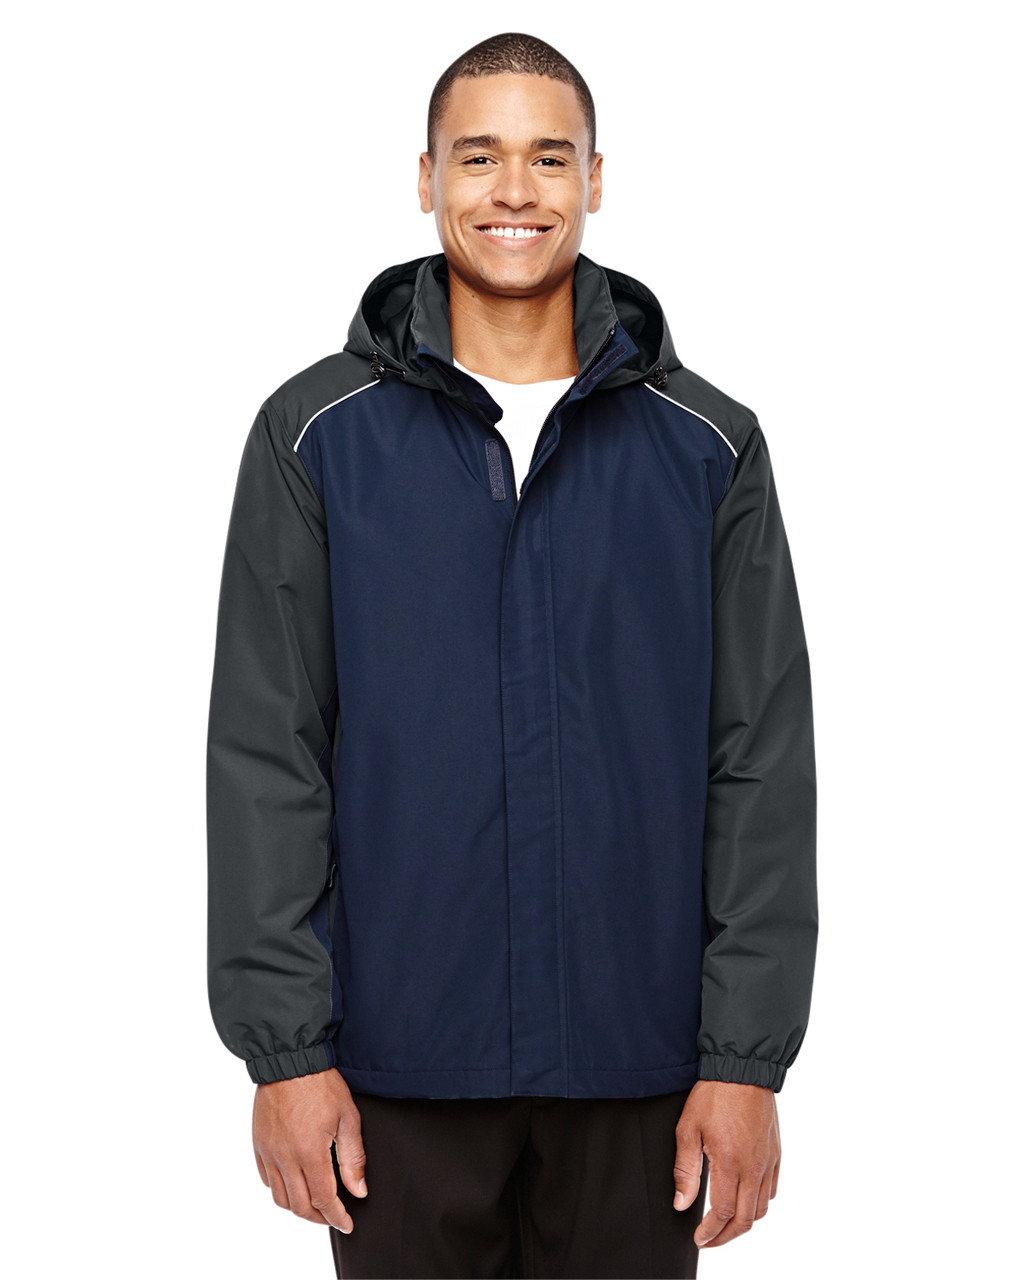 Classic Navy/Carbon - 88225 Ash City - Core 365 Men's Inspire Colorblock All-Season Jacket | Blankclothing.ca